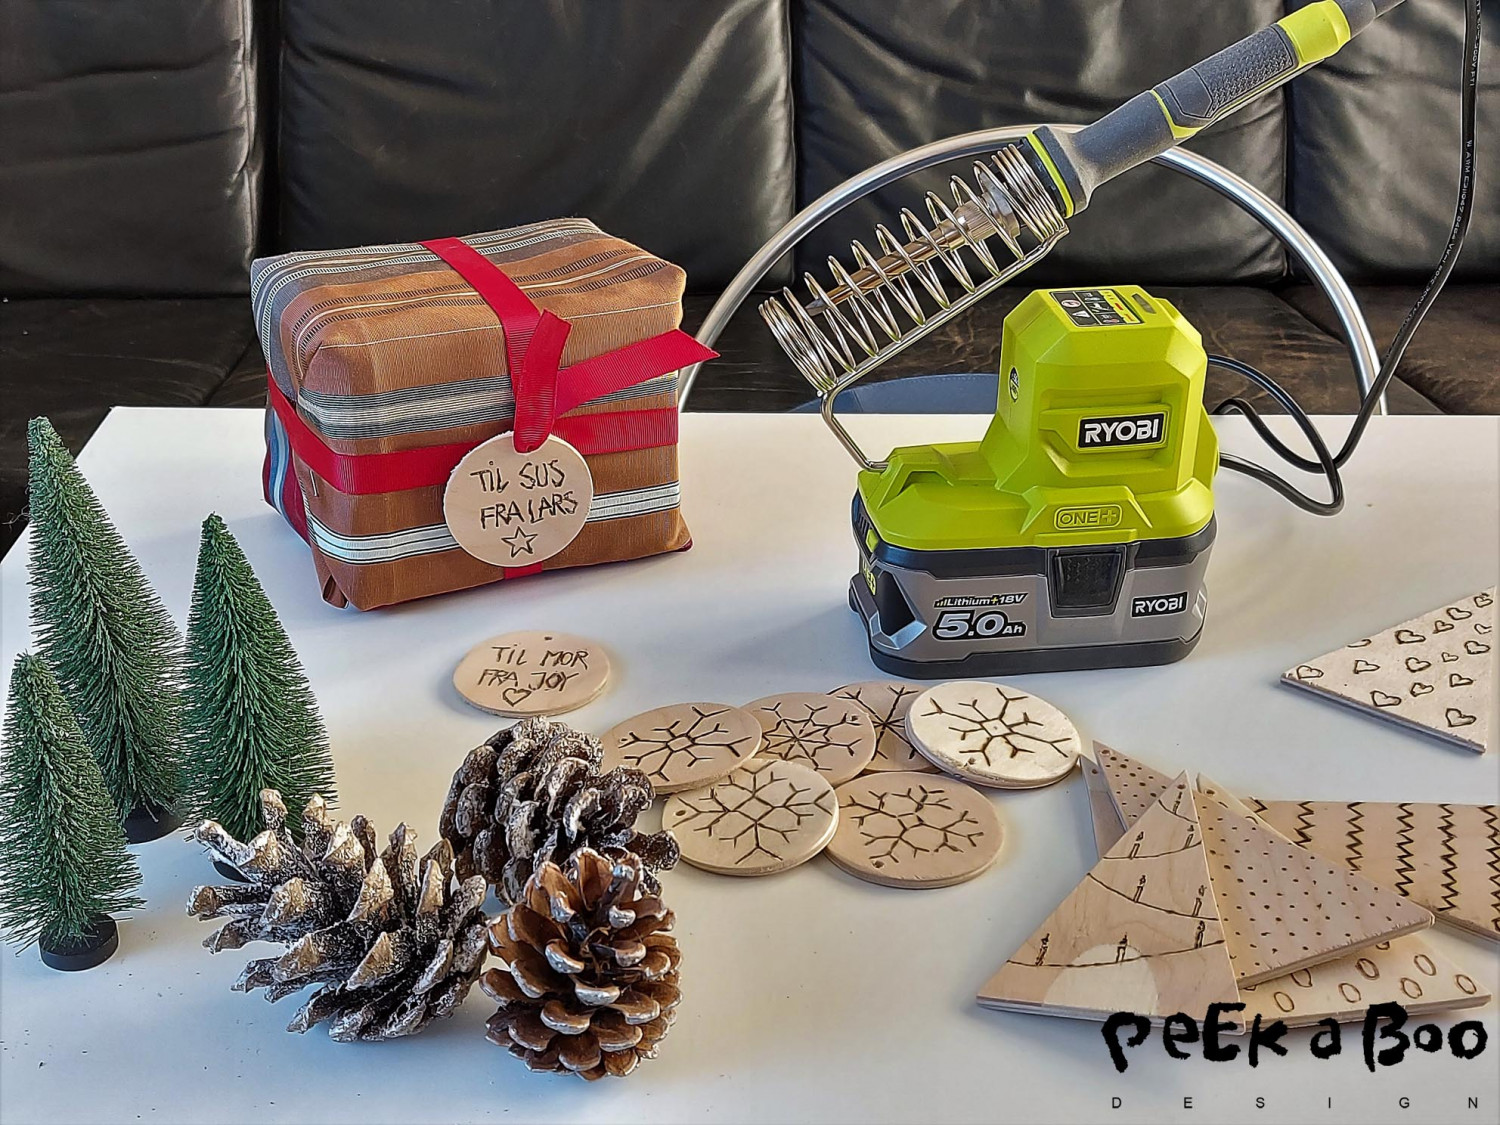 The Soldering iron from Ryobi, here used as a wood burner.